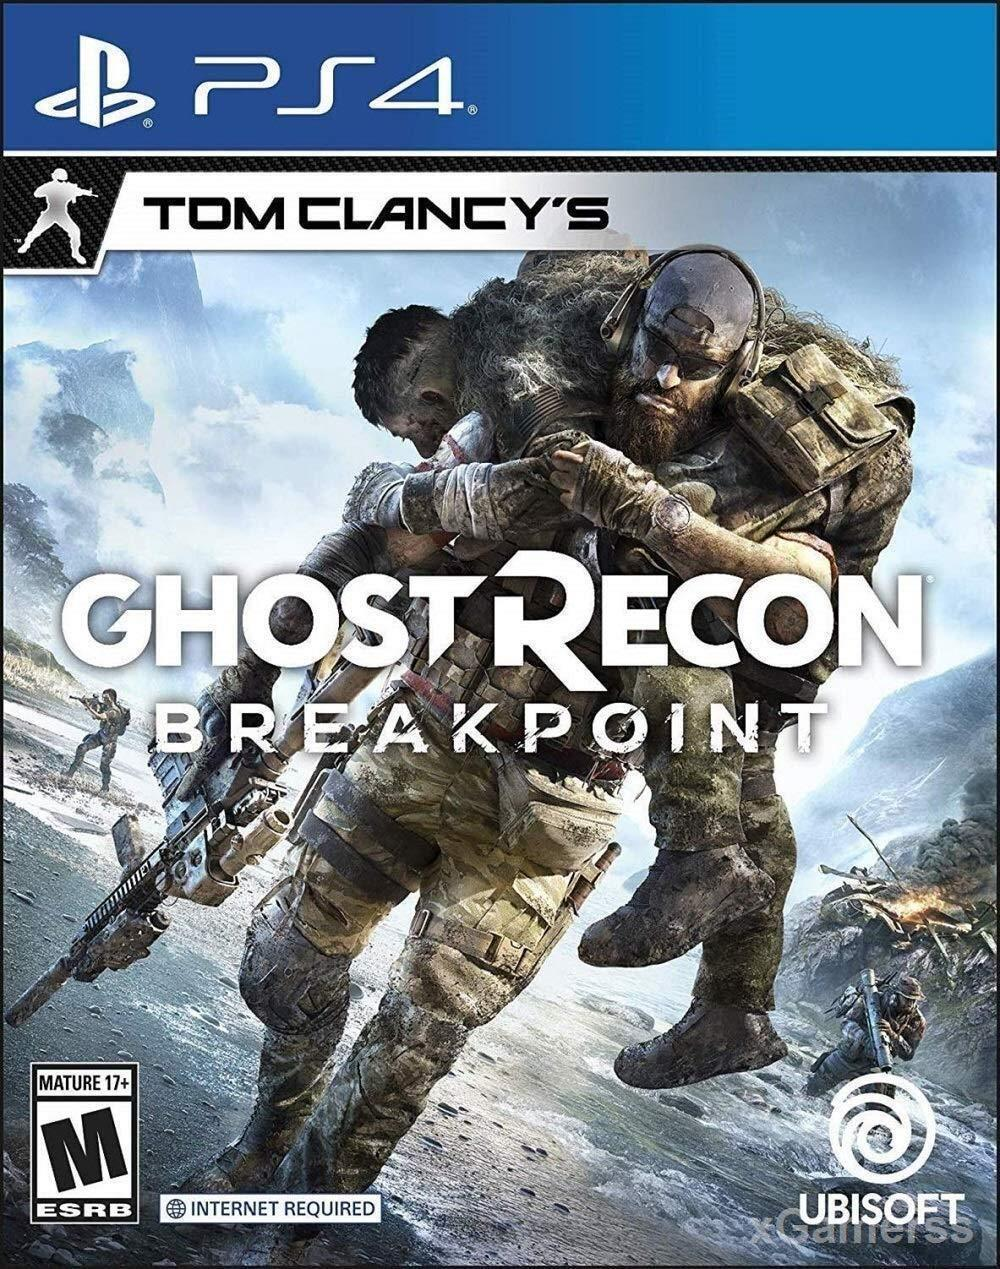 Ghost Recon Breakpoint - A science-fiction universe where you play in the third person in an infiltration adventure